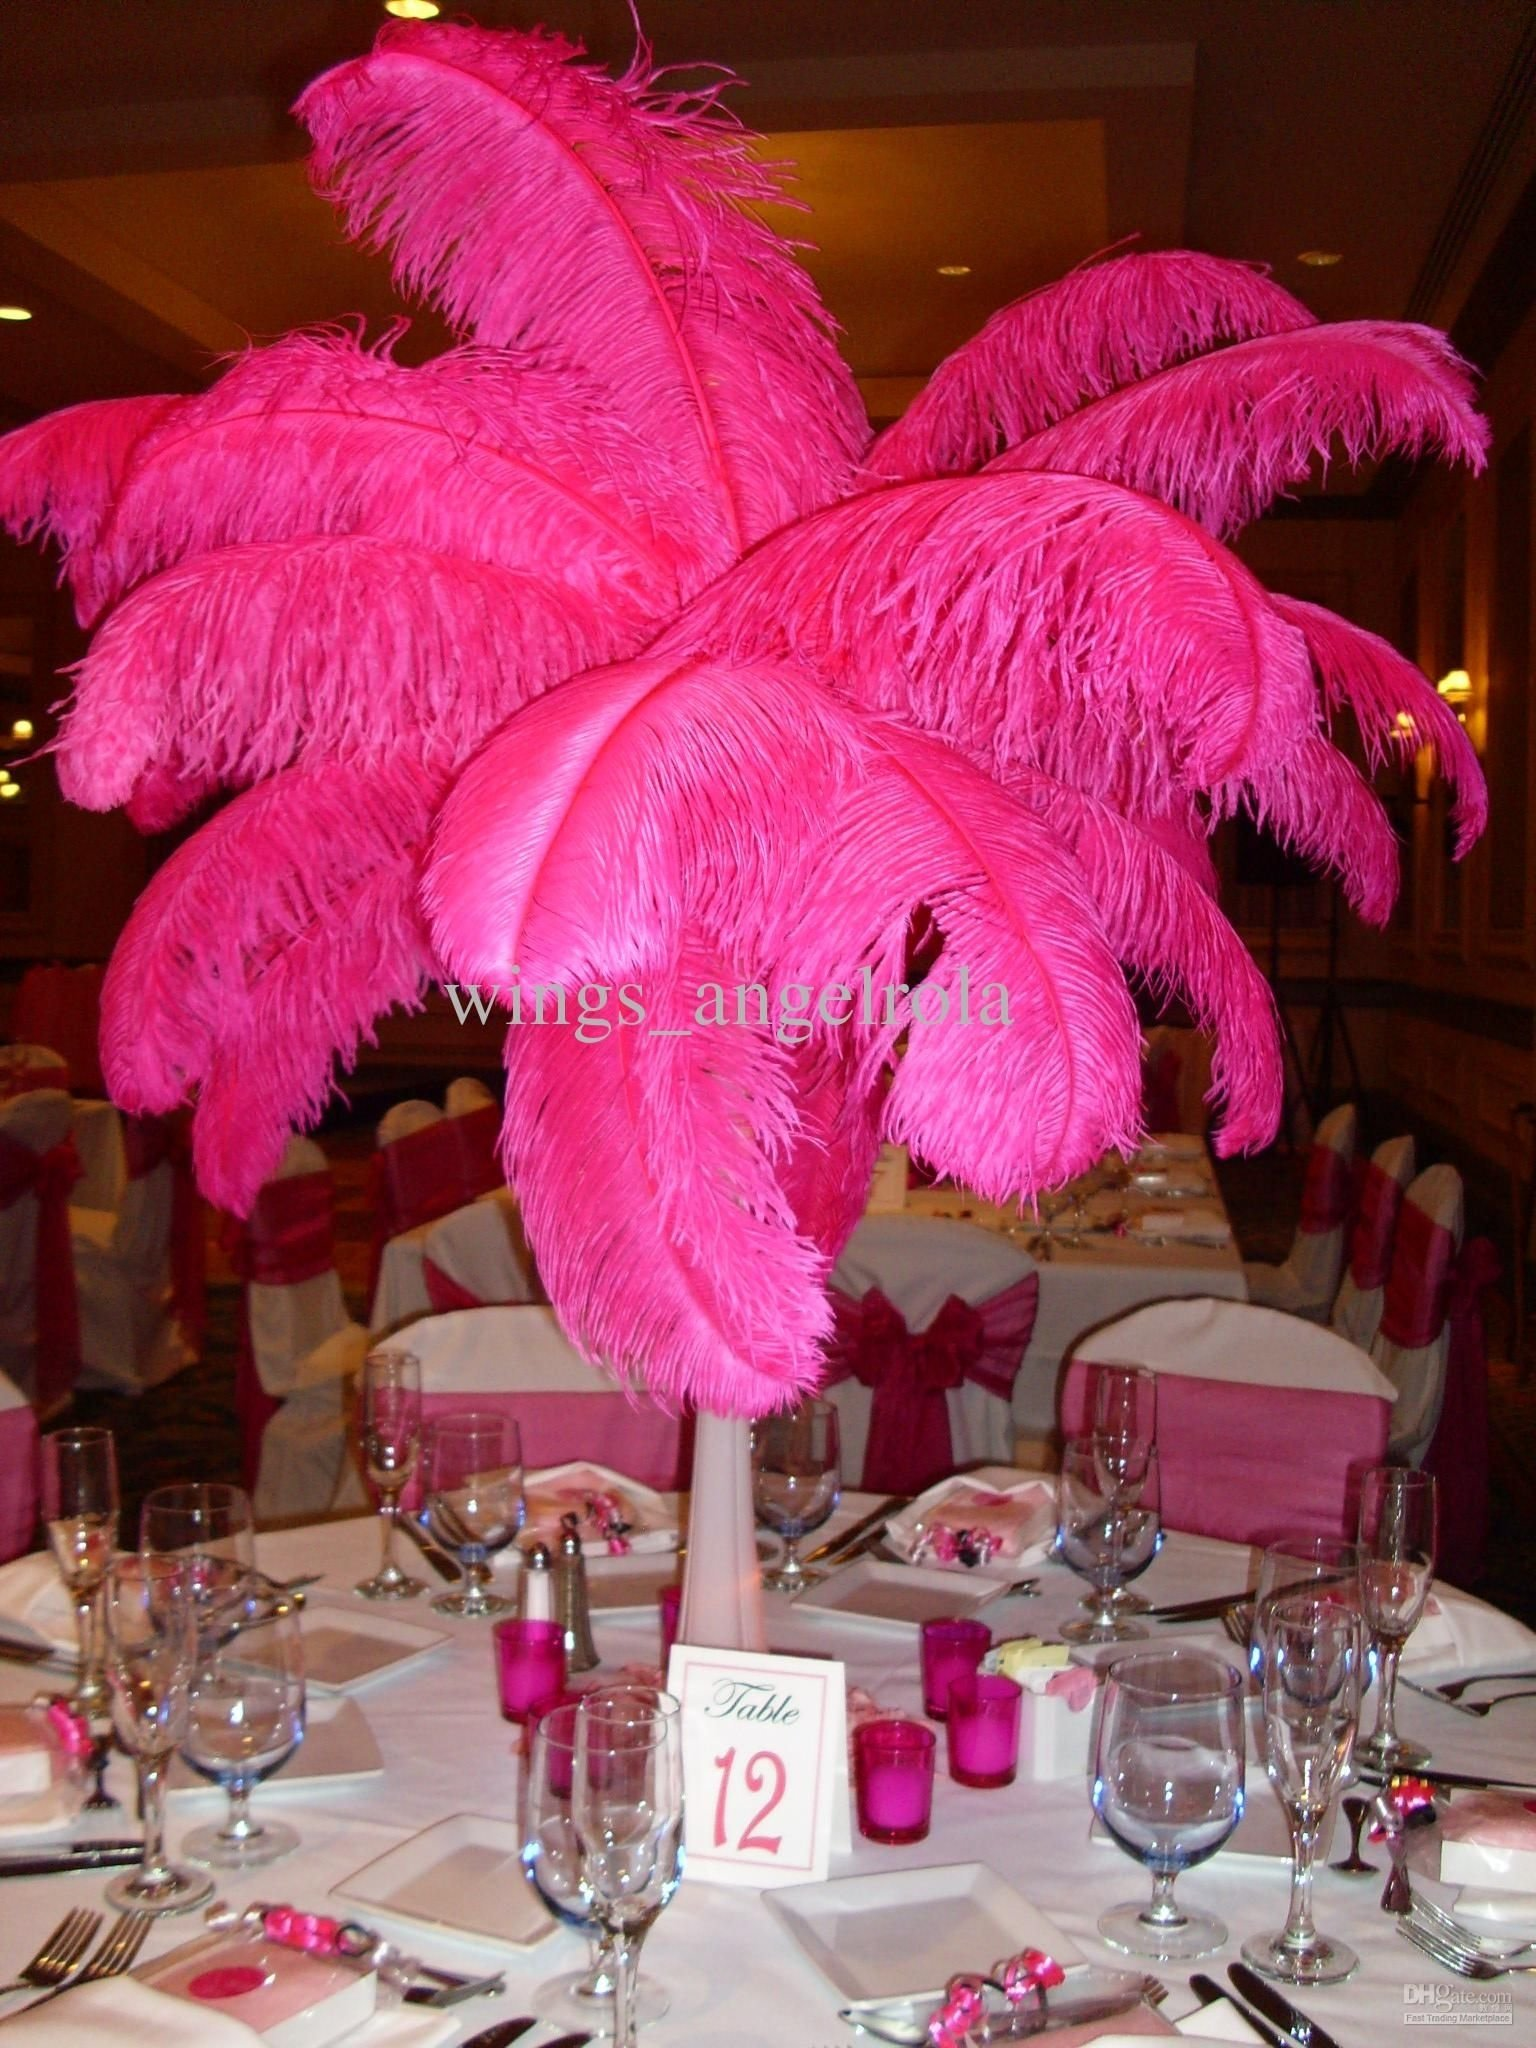 10 Fabulous Pink Party Ideas For Adults ostrich feather 200pcs lot 14 16 wedding party decoration 2021